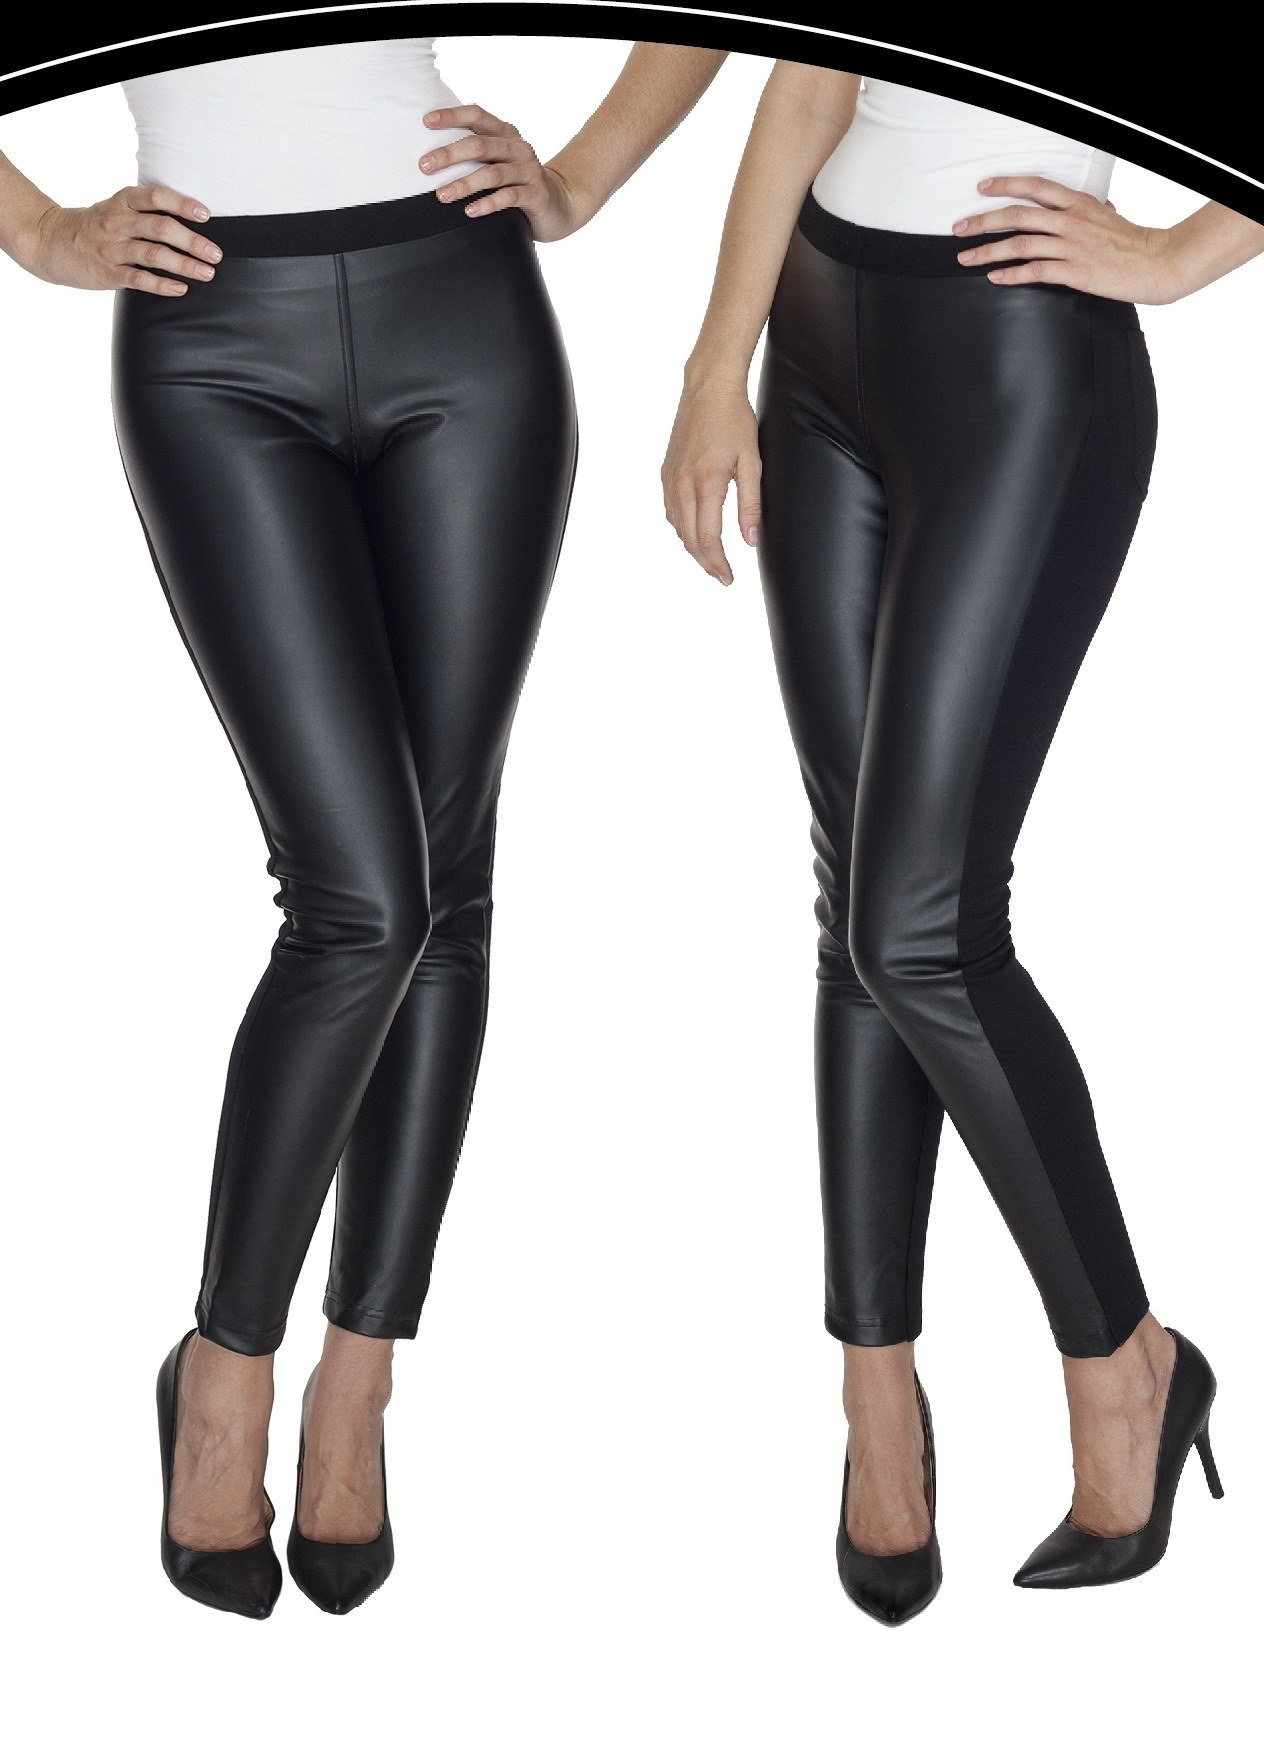 2017 Women′s Tight Legging Made of PU Leather & Roma Fabric